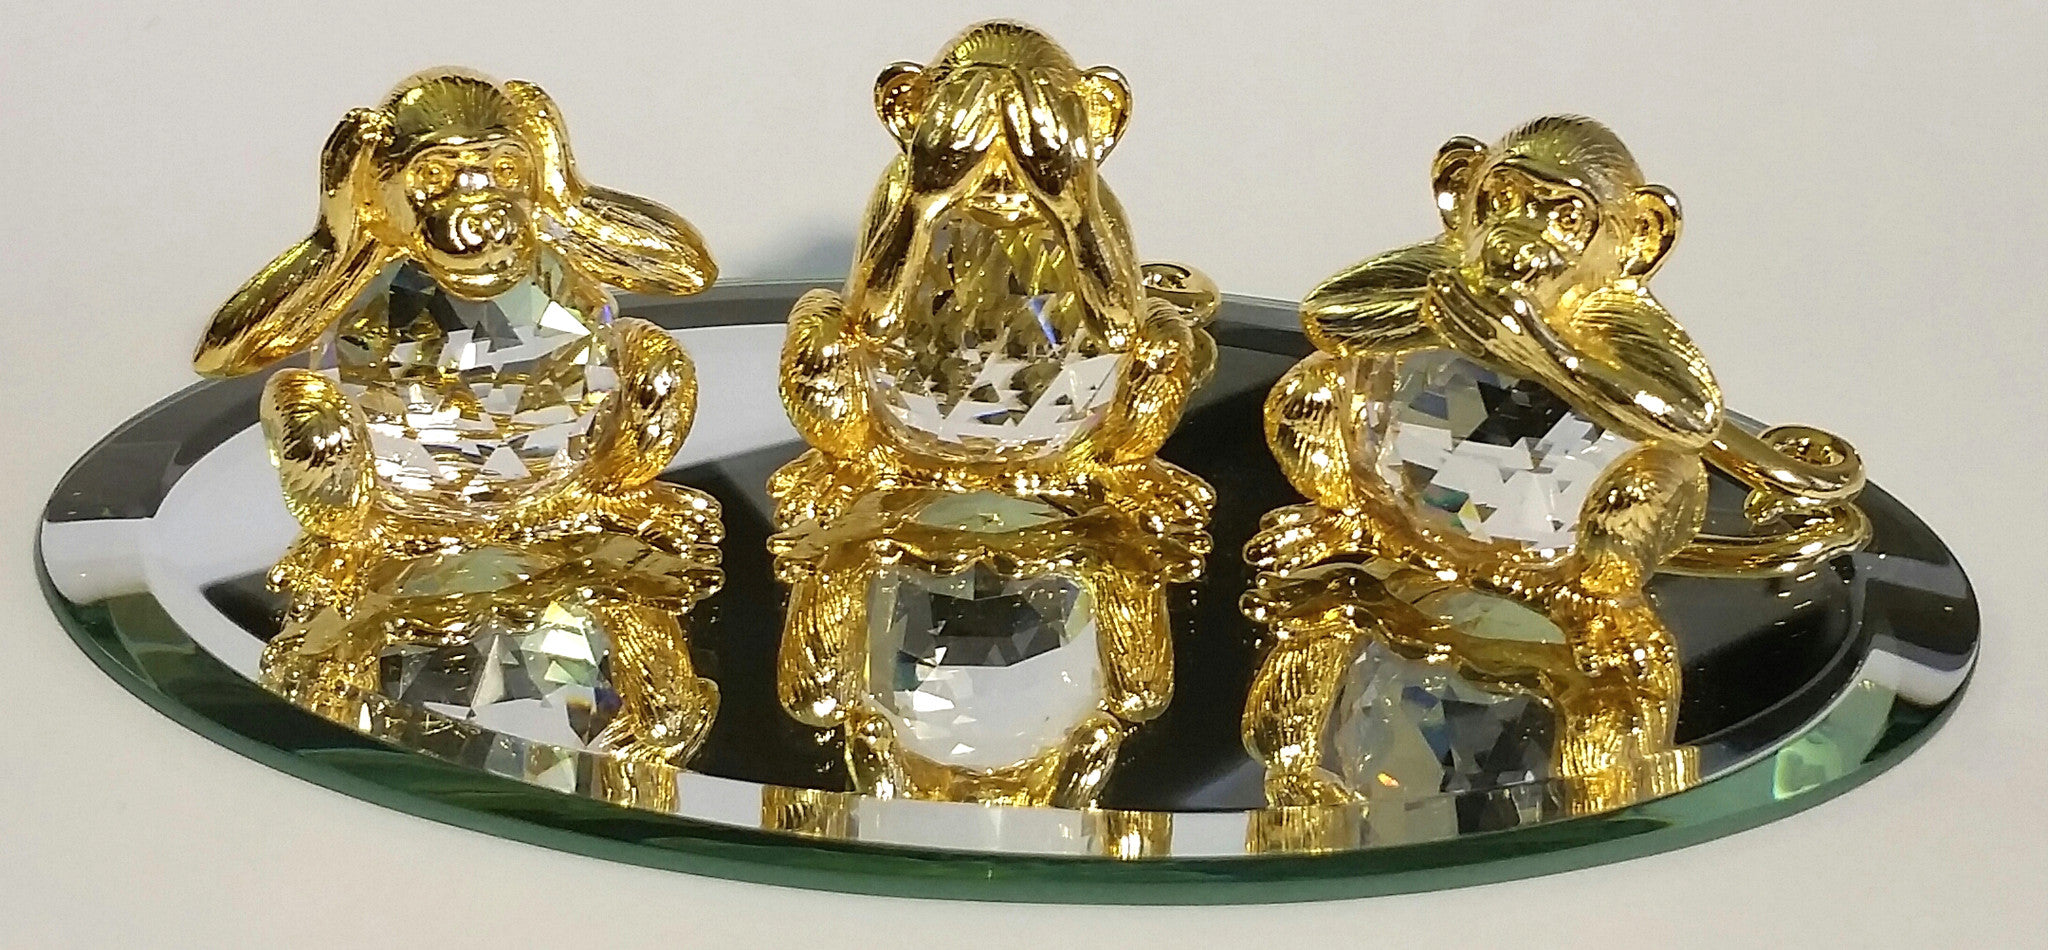 Hear No Evil, See No Evil, Speak No Evil Crystal Monkeys